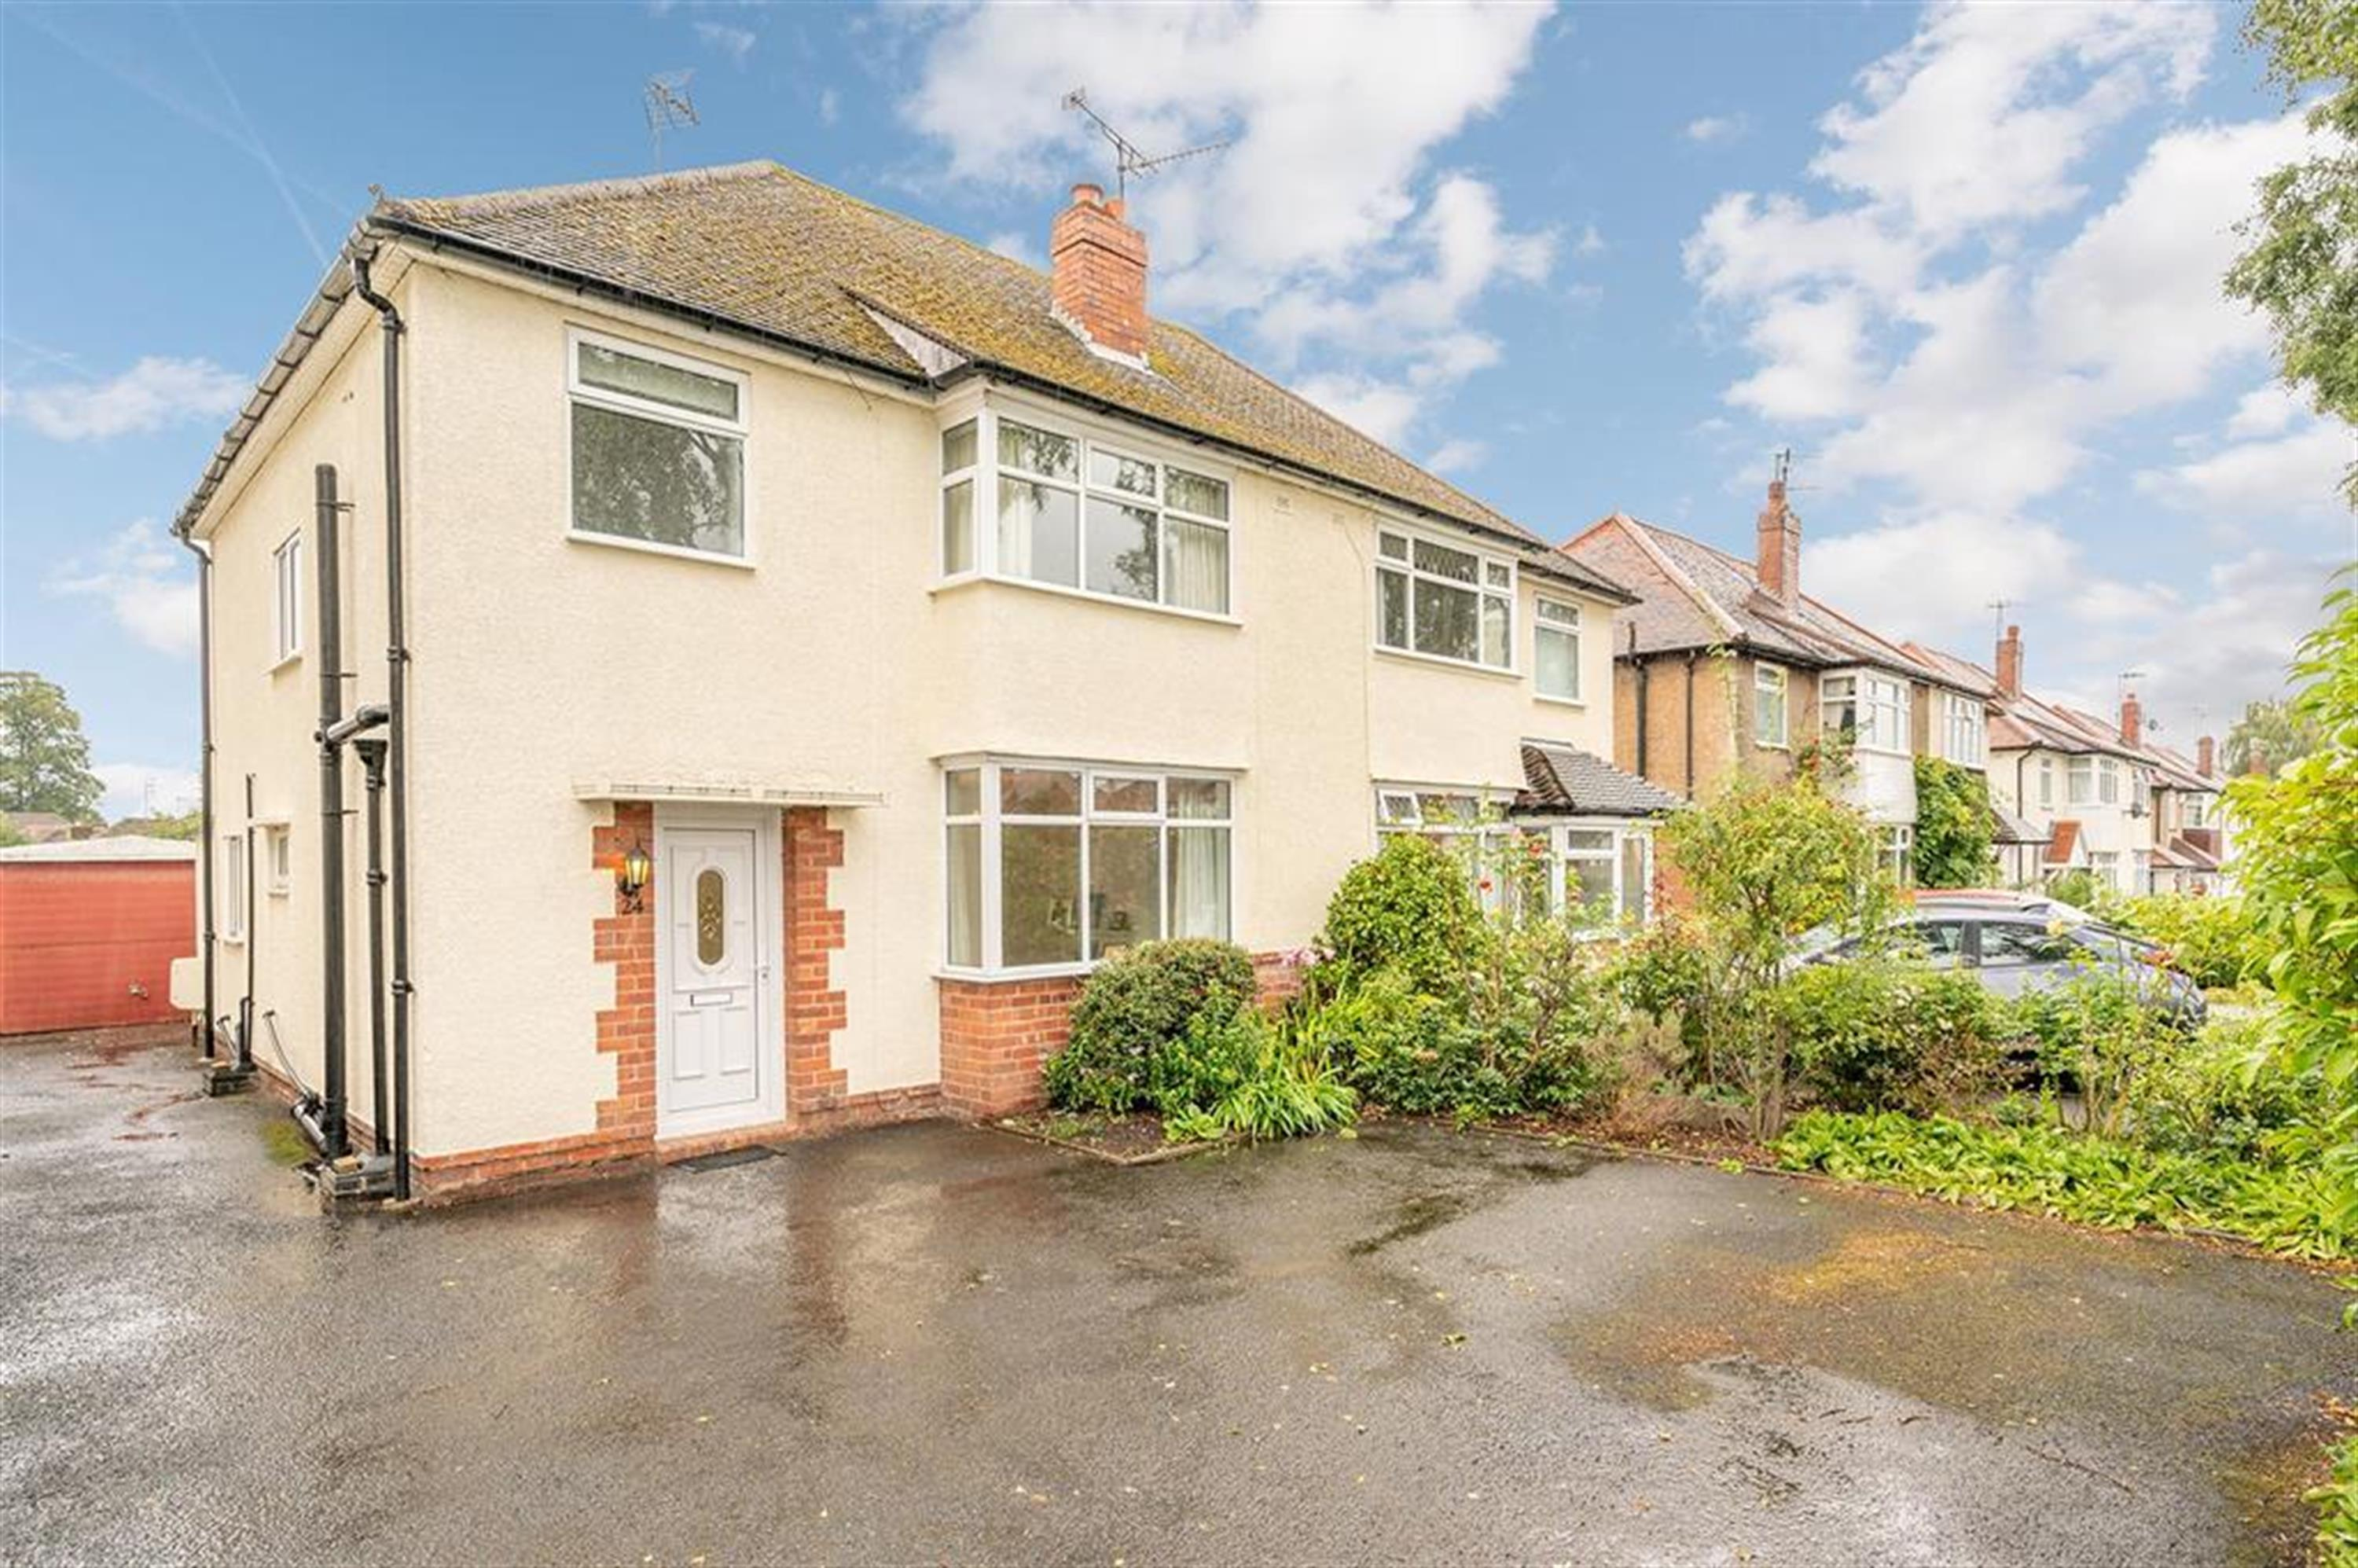 Kingsley Road, Kingswinford, DY6 9RX